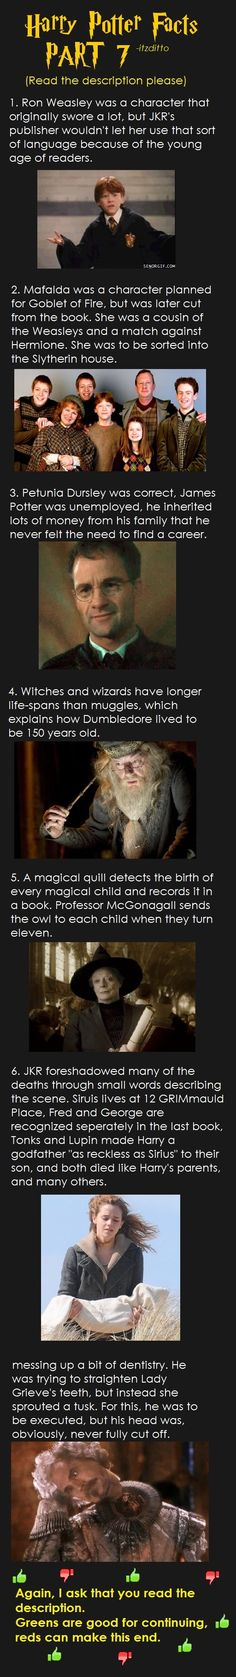 Harry Potter Facts Part 7 - Imgur